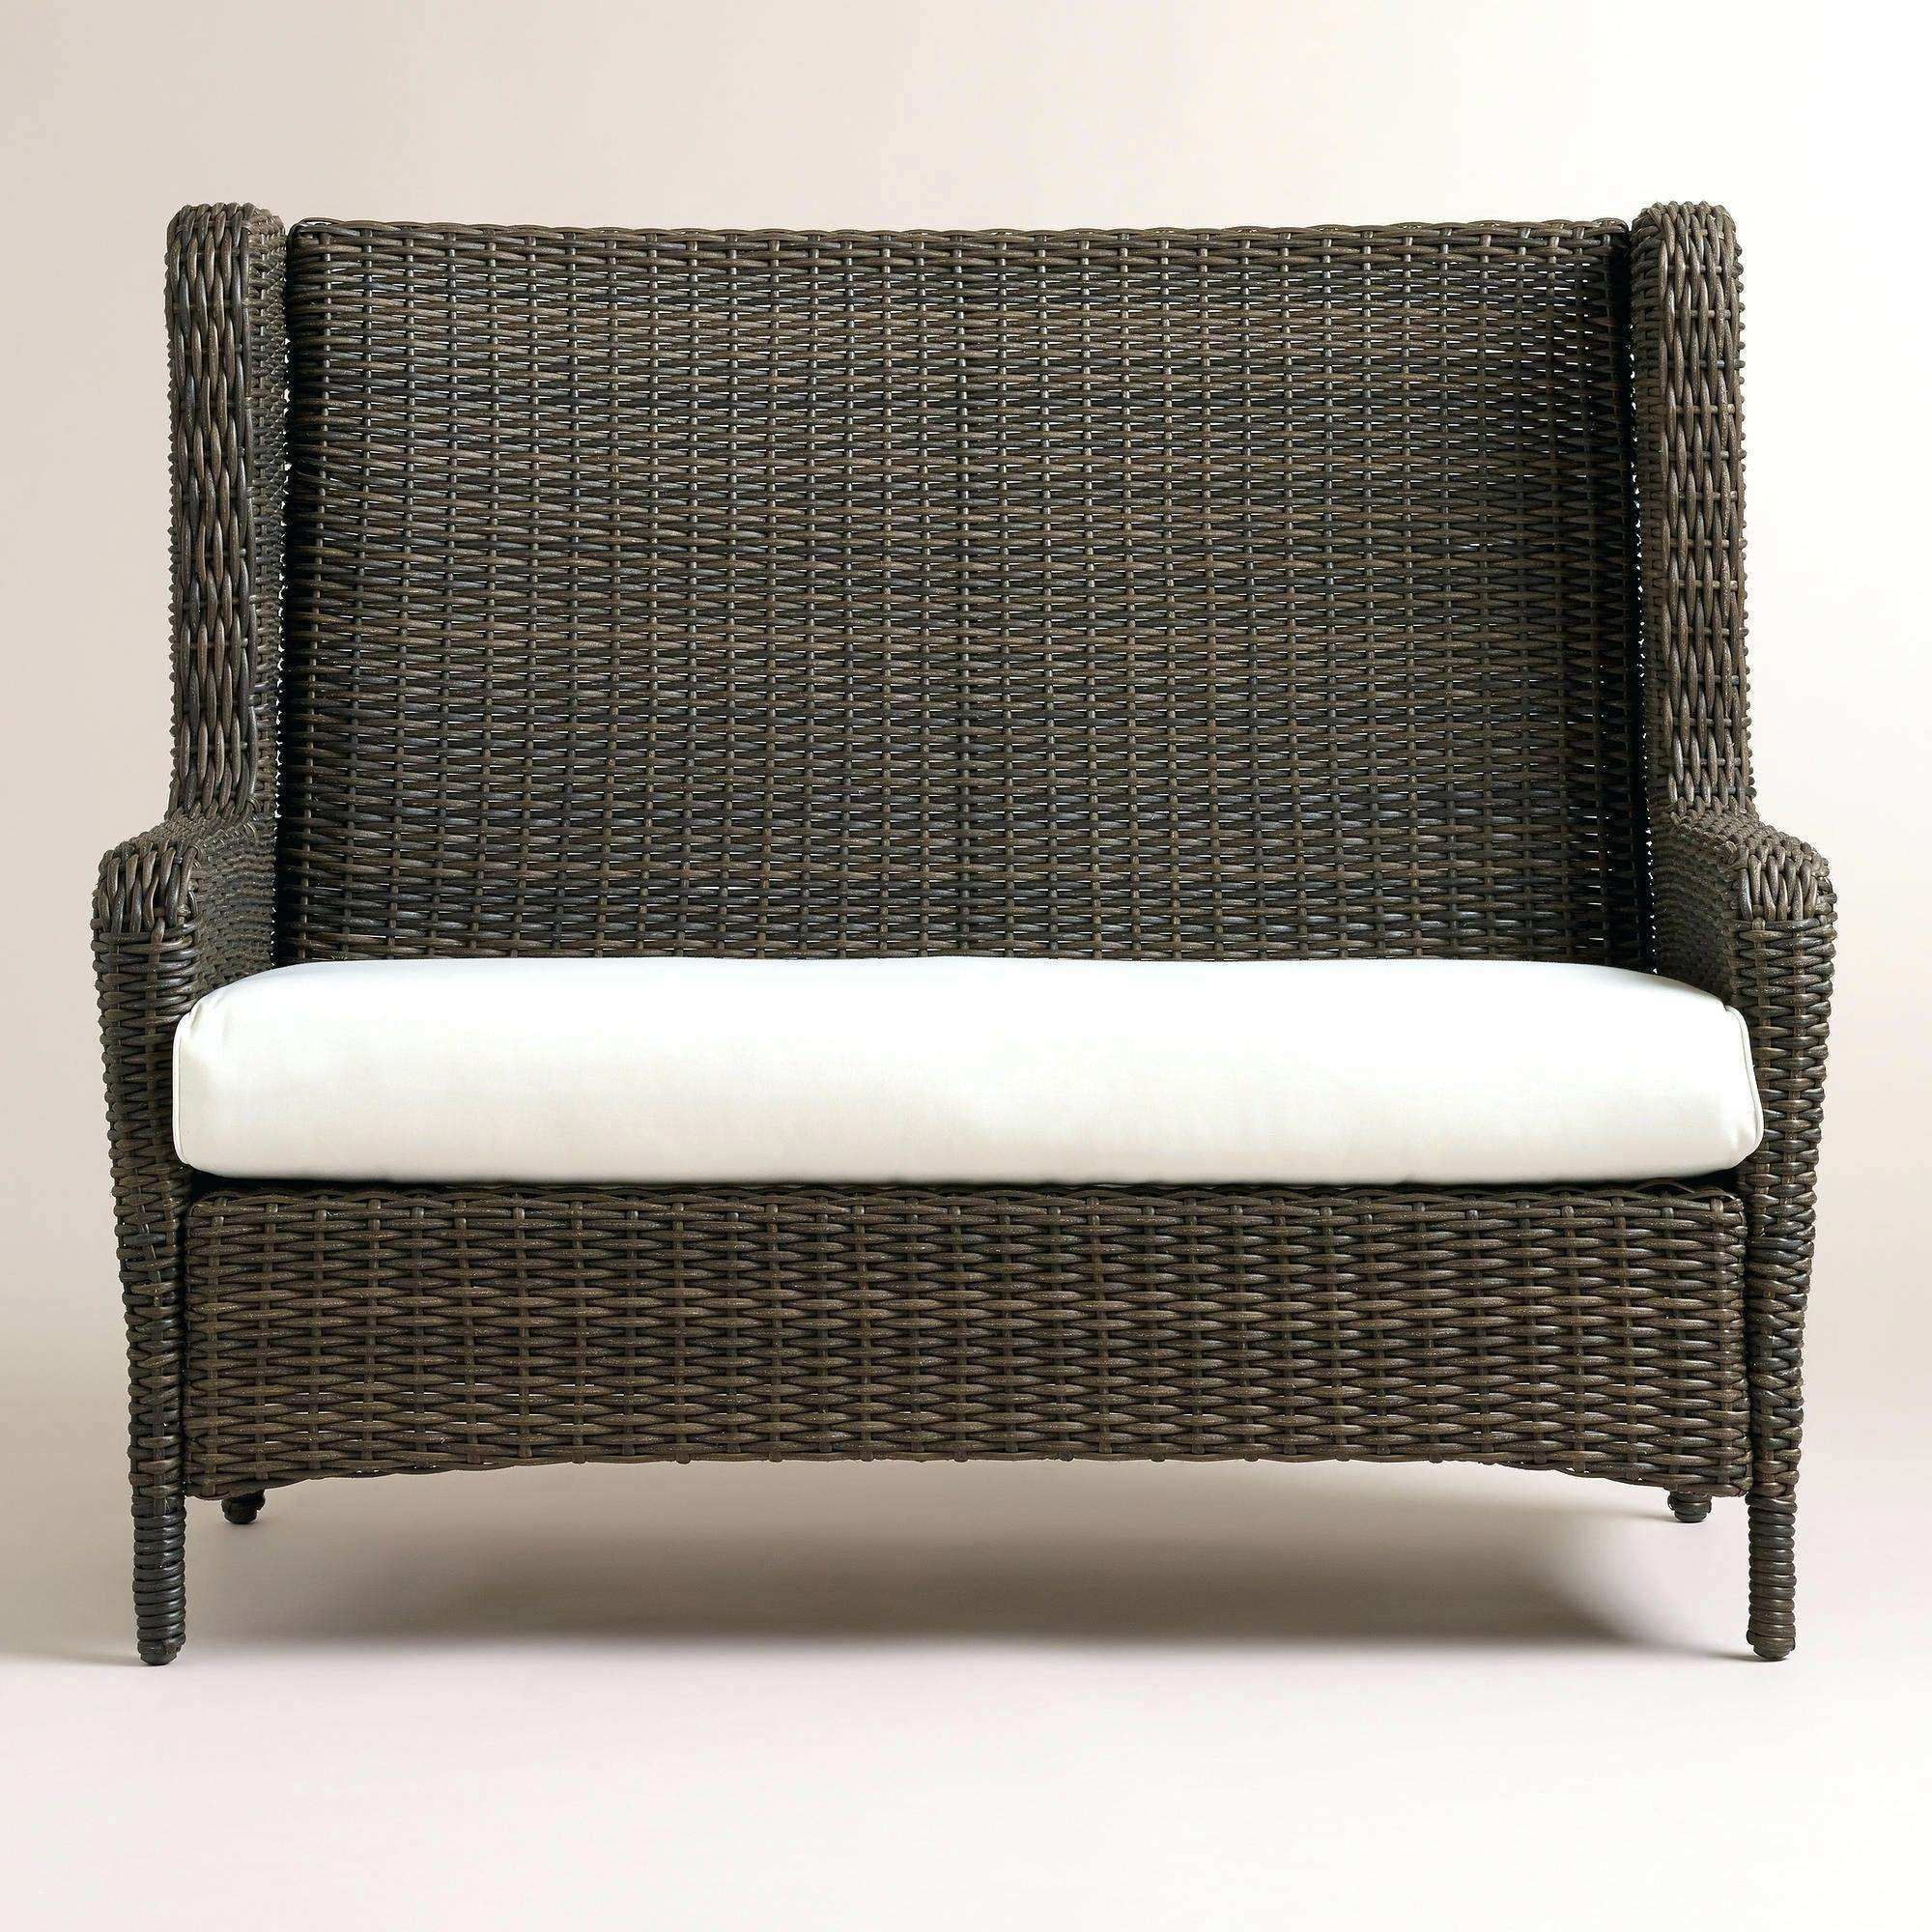 Chairs Frame Inspirational Wicker Outdoor sofa 0d Patio Chairs Sale